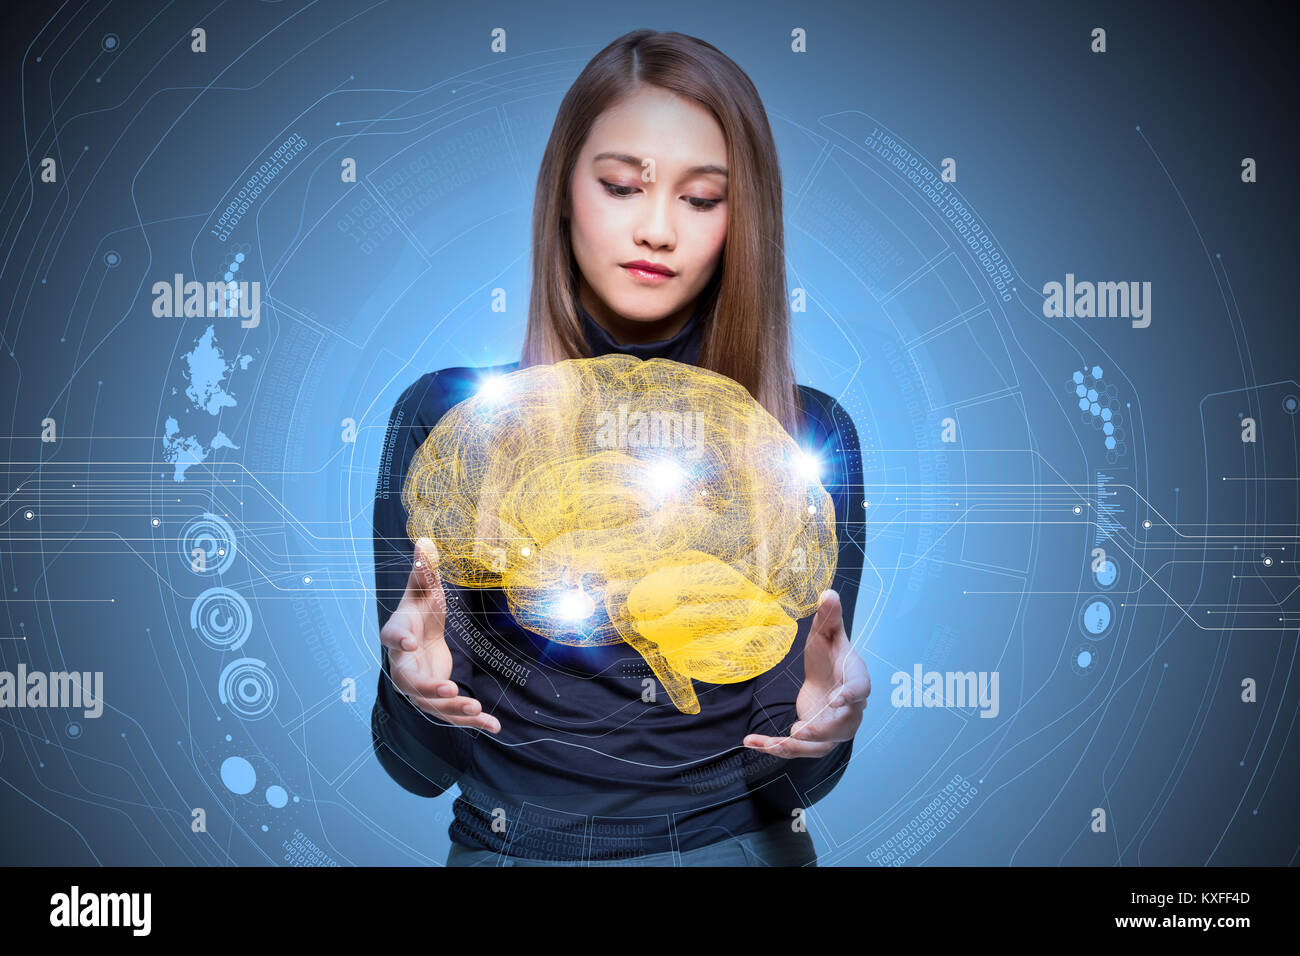 AI(Artificial Intelligence) concept, 3d rendering - Stock Image